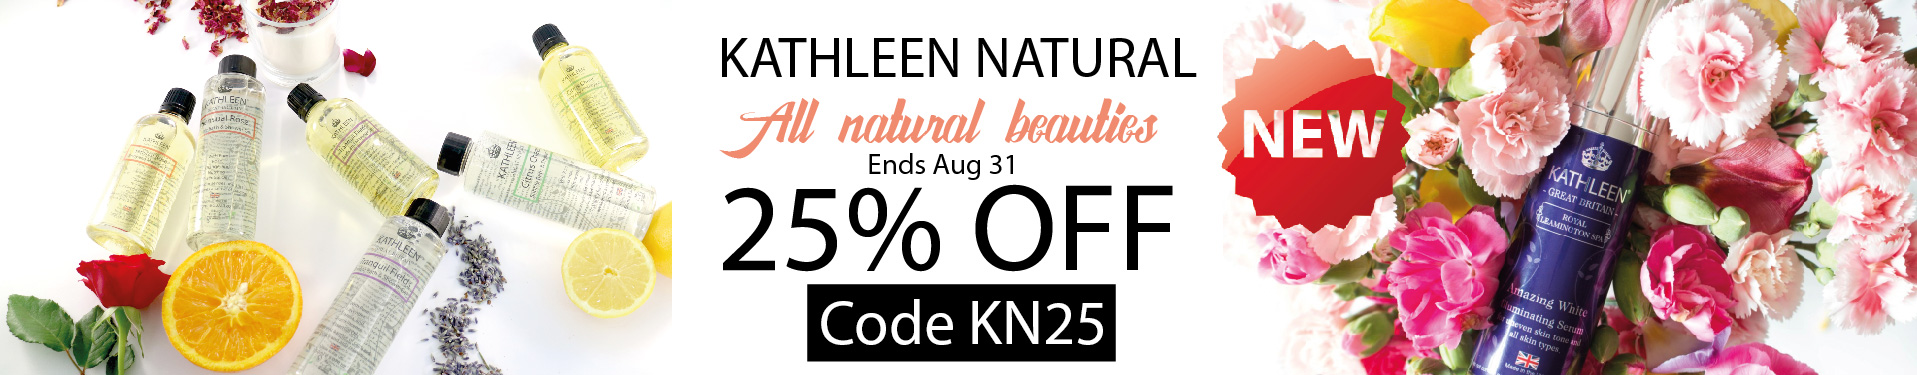 kathleen-natural-25-off.jpg